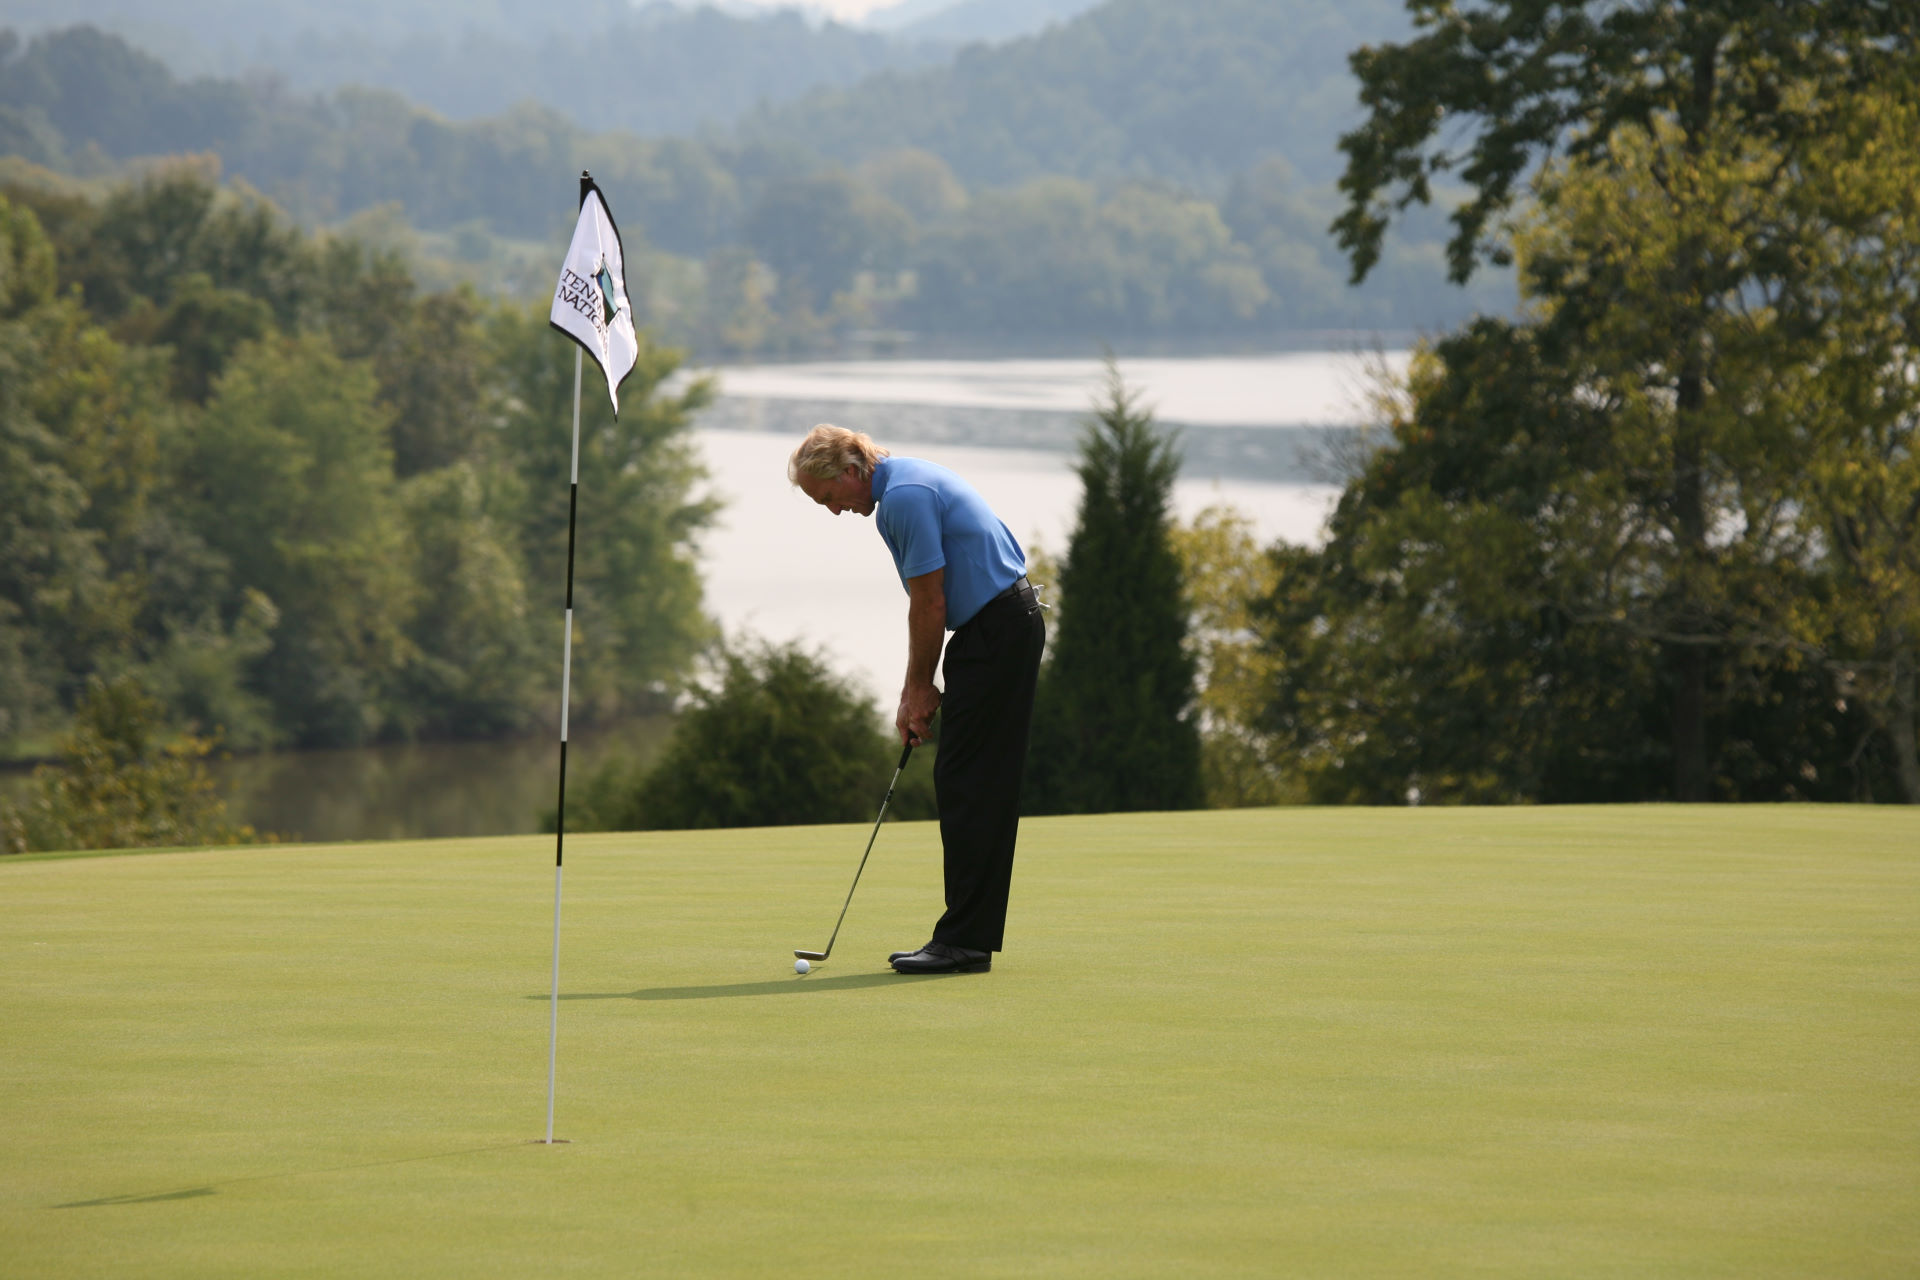 Greg Norman golfing at Tennessee National with Lake in Background